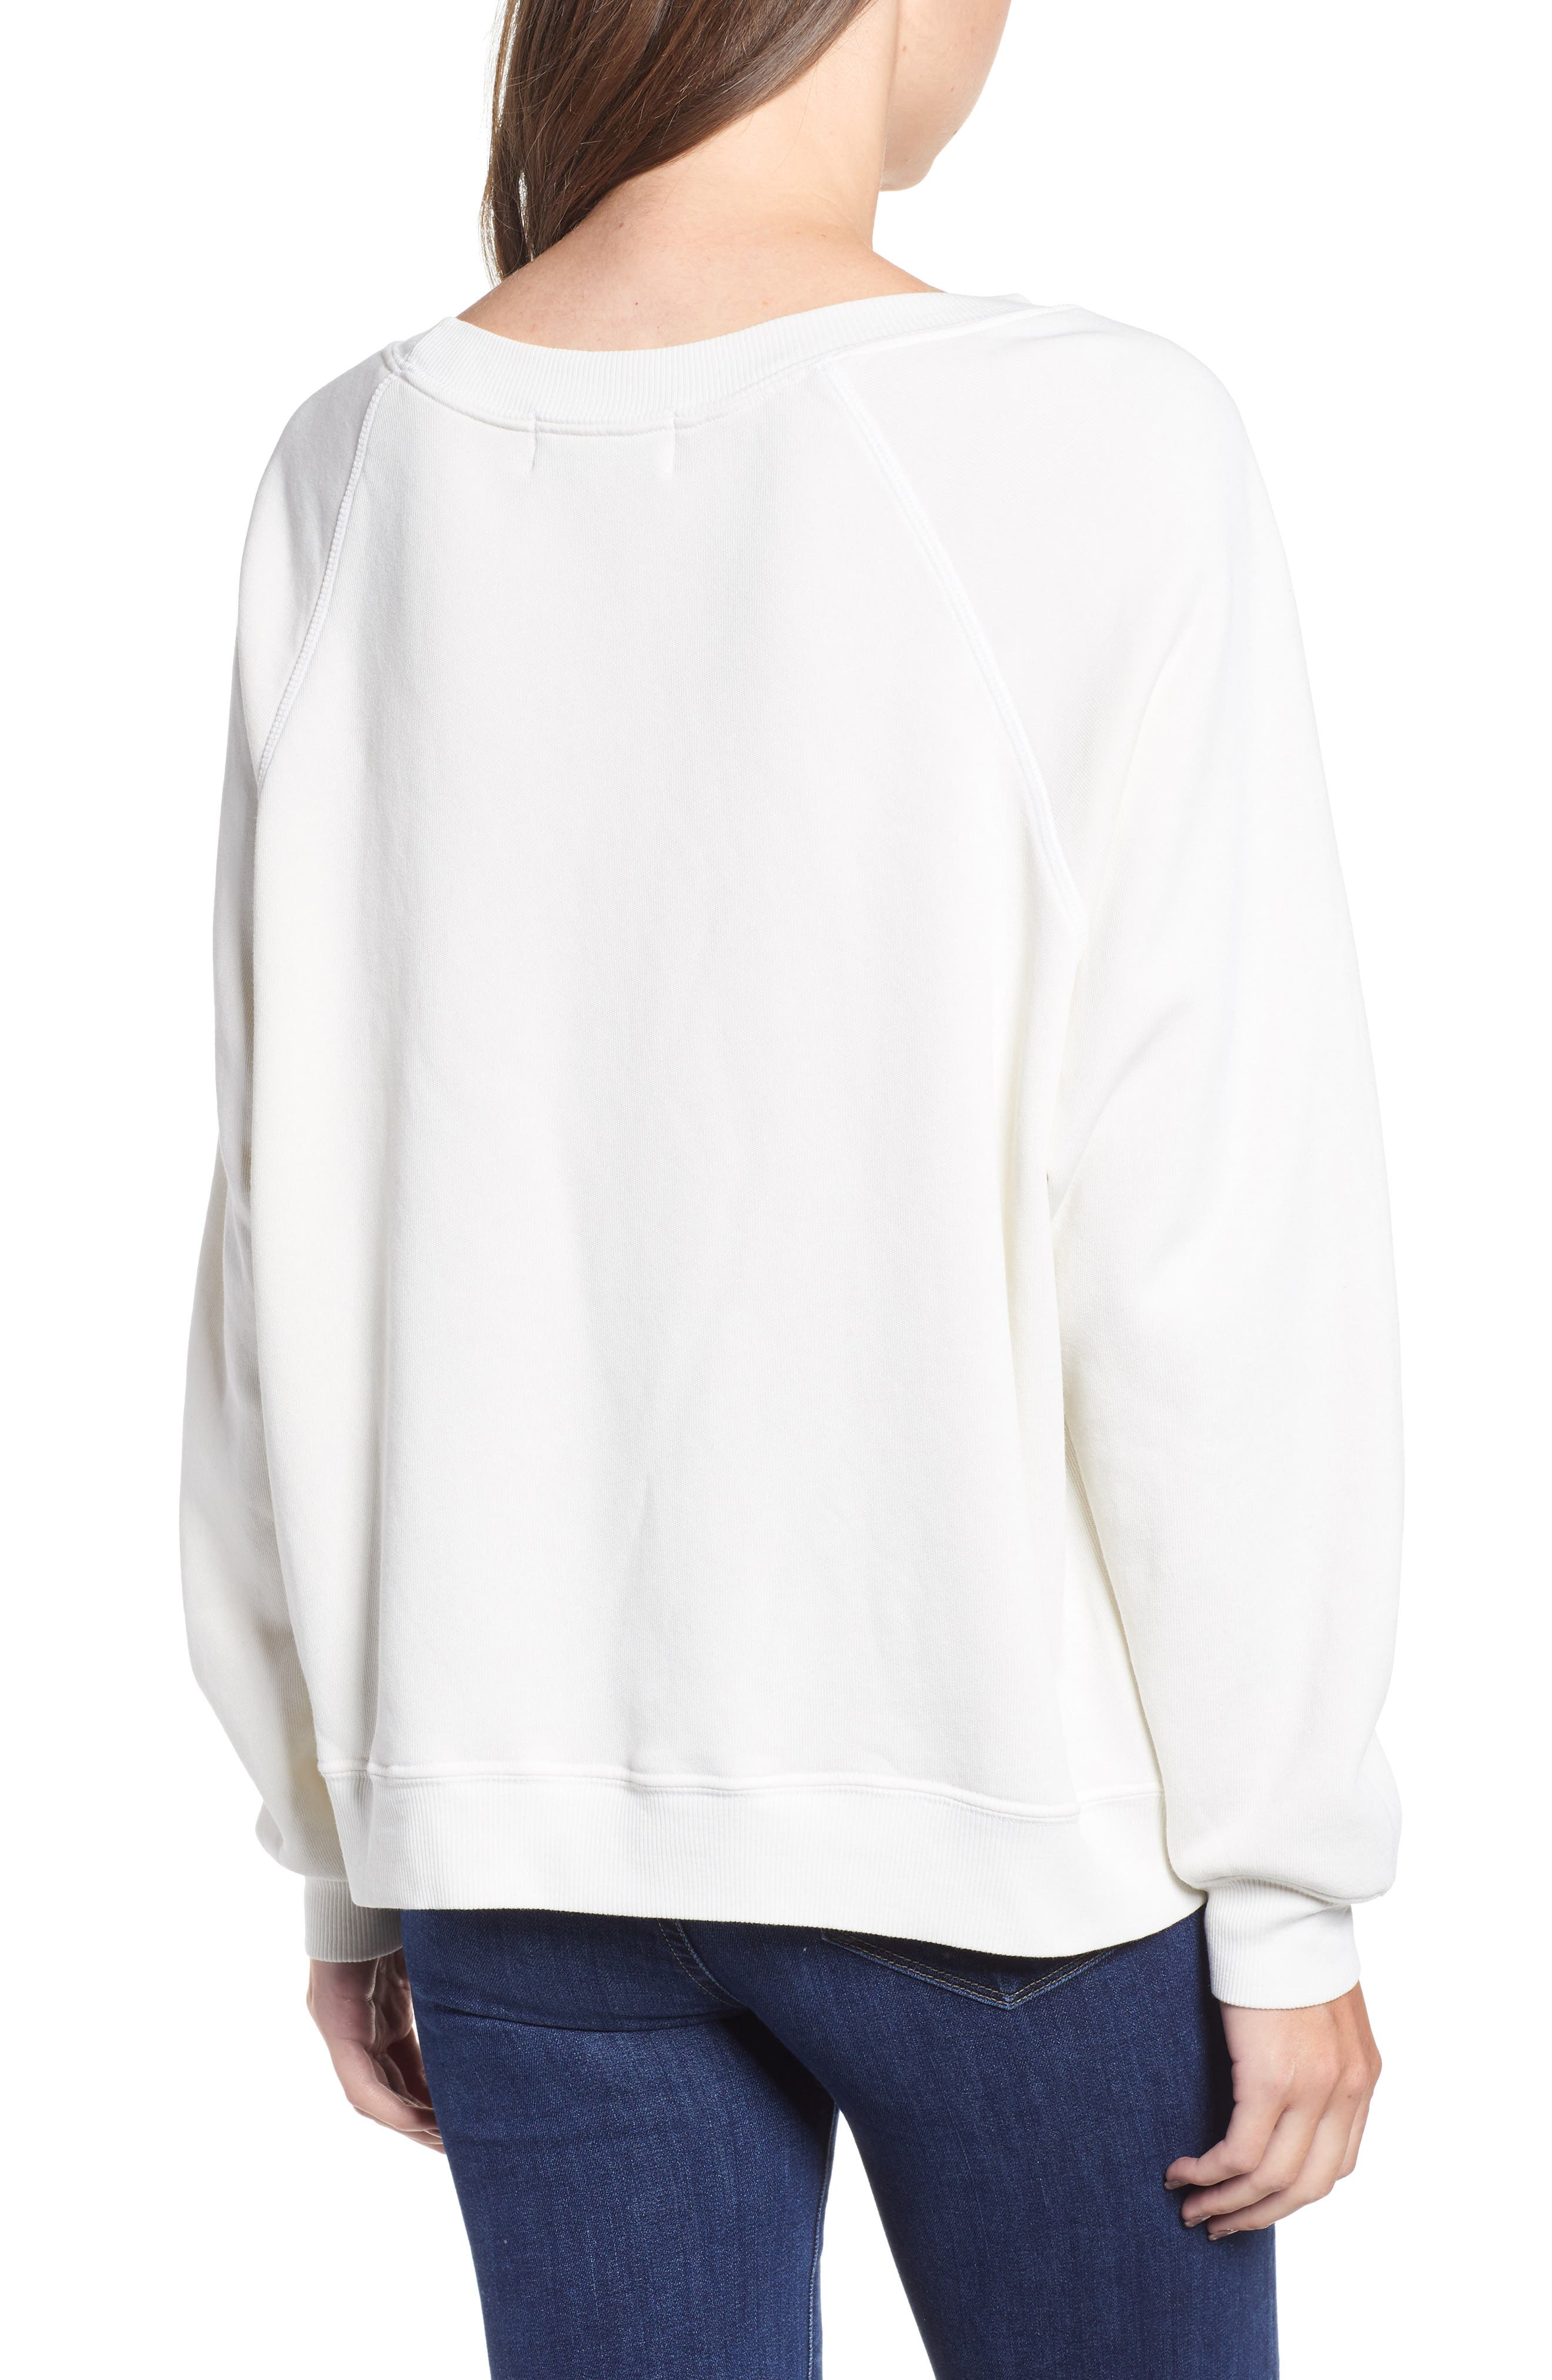 Sommers - Over It Sweatshirt,                             Alternate thumbnail 2, color,                             101